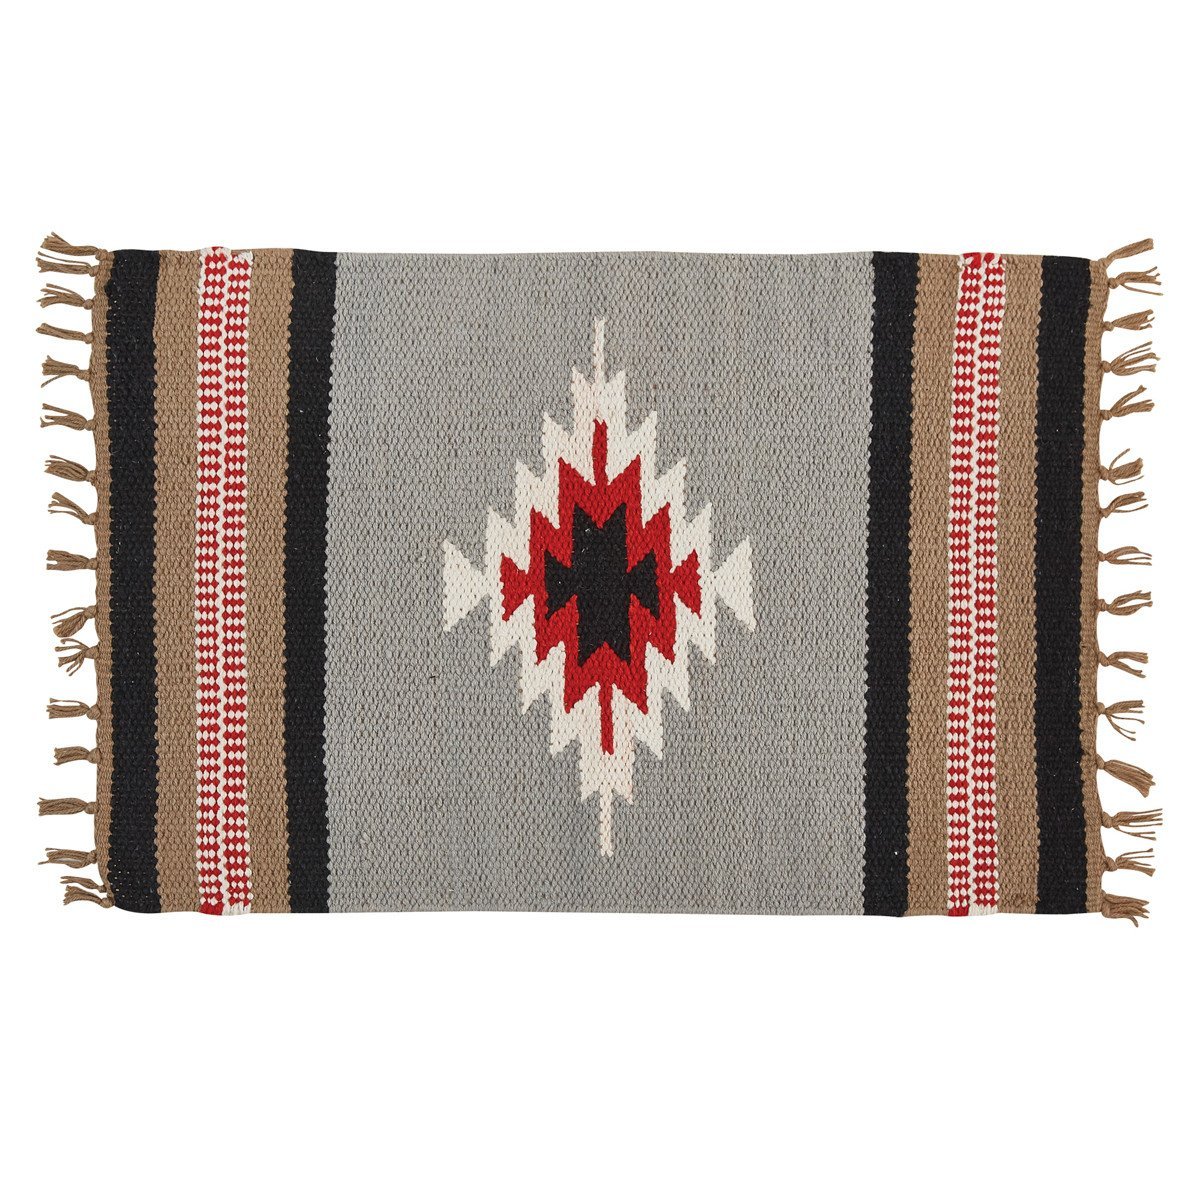 TRAIL BLANKET PLACEMAT